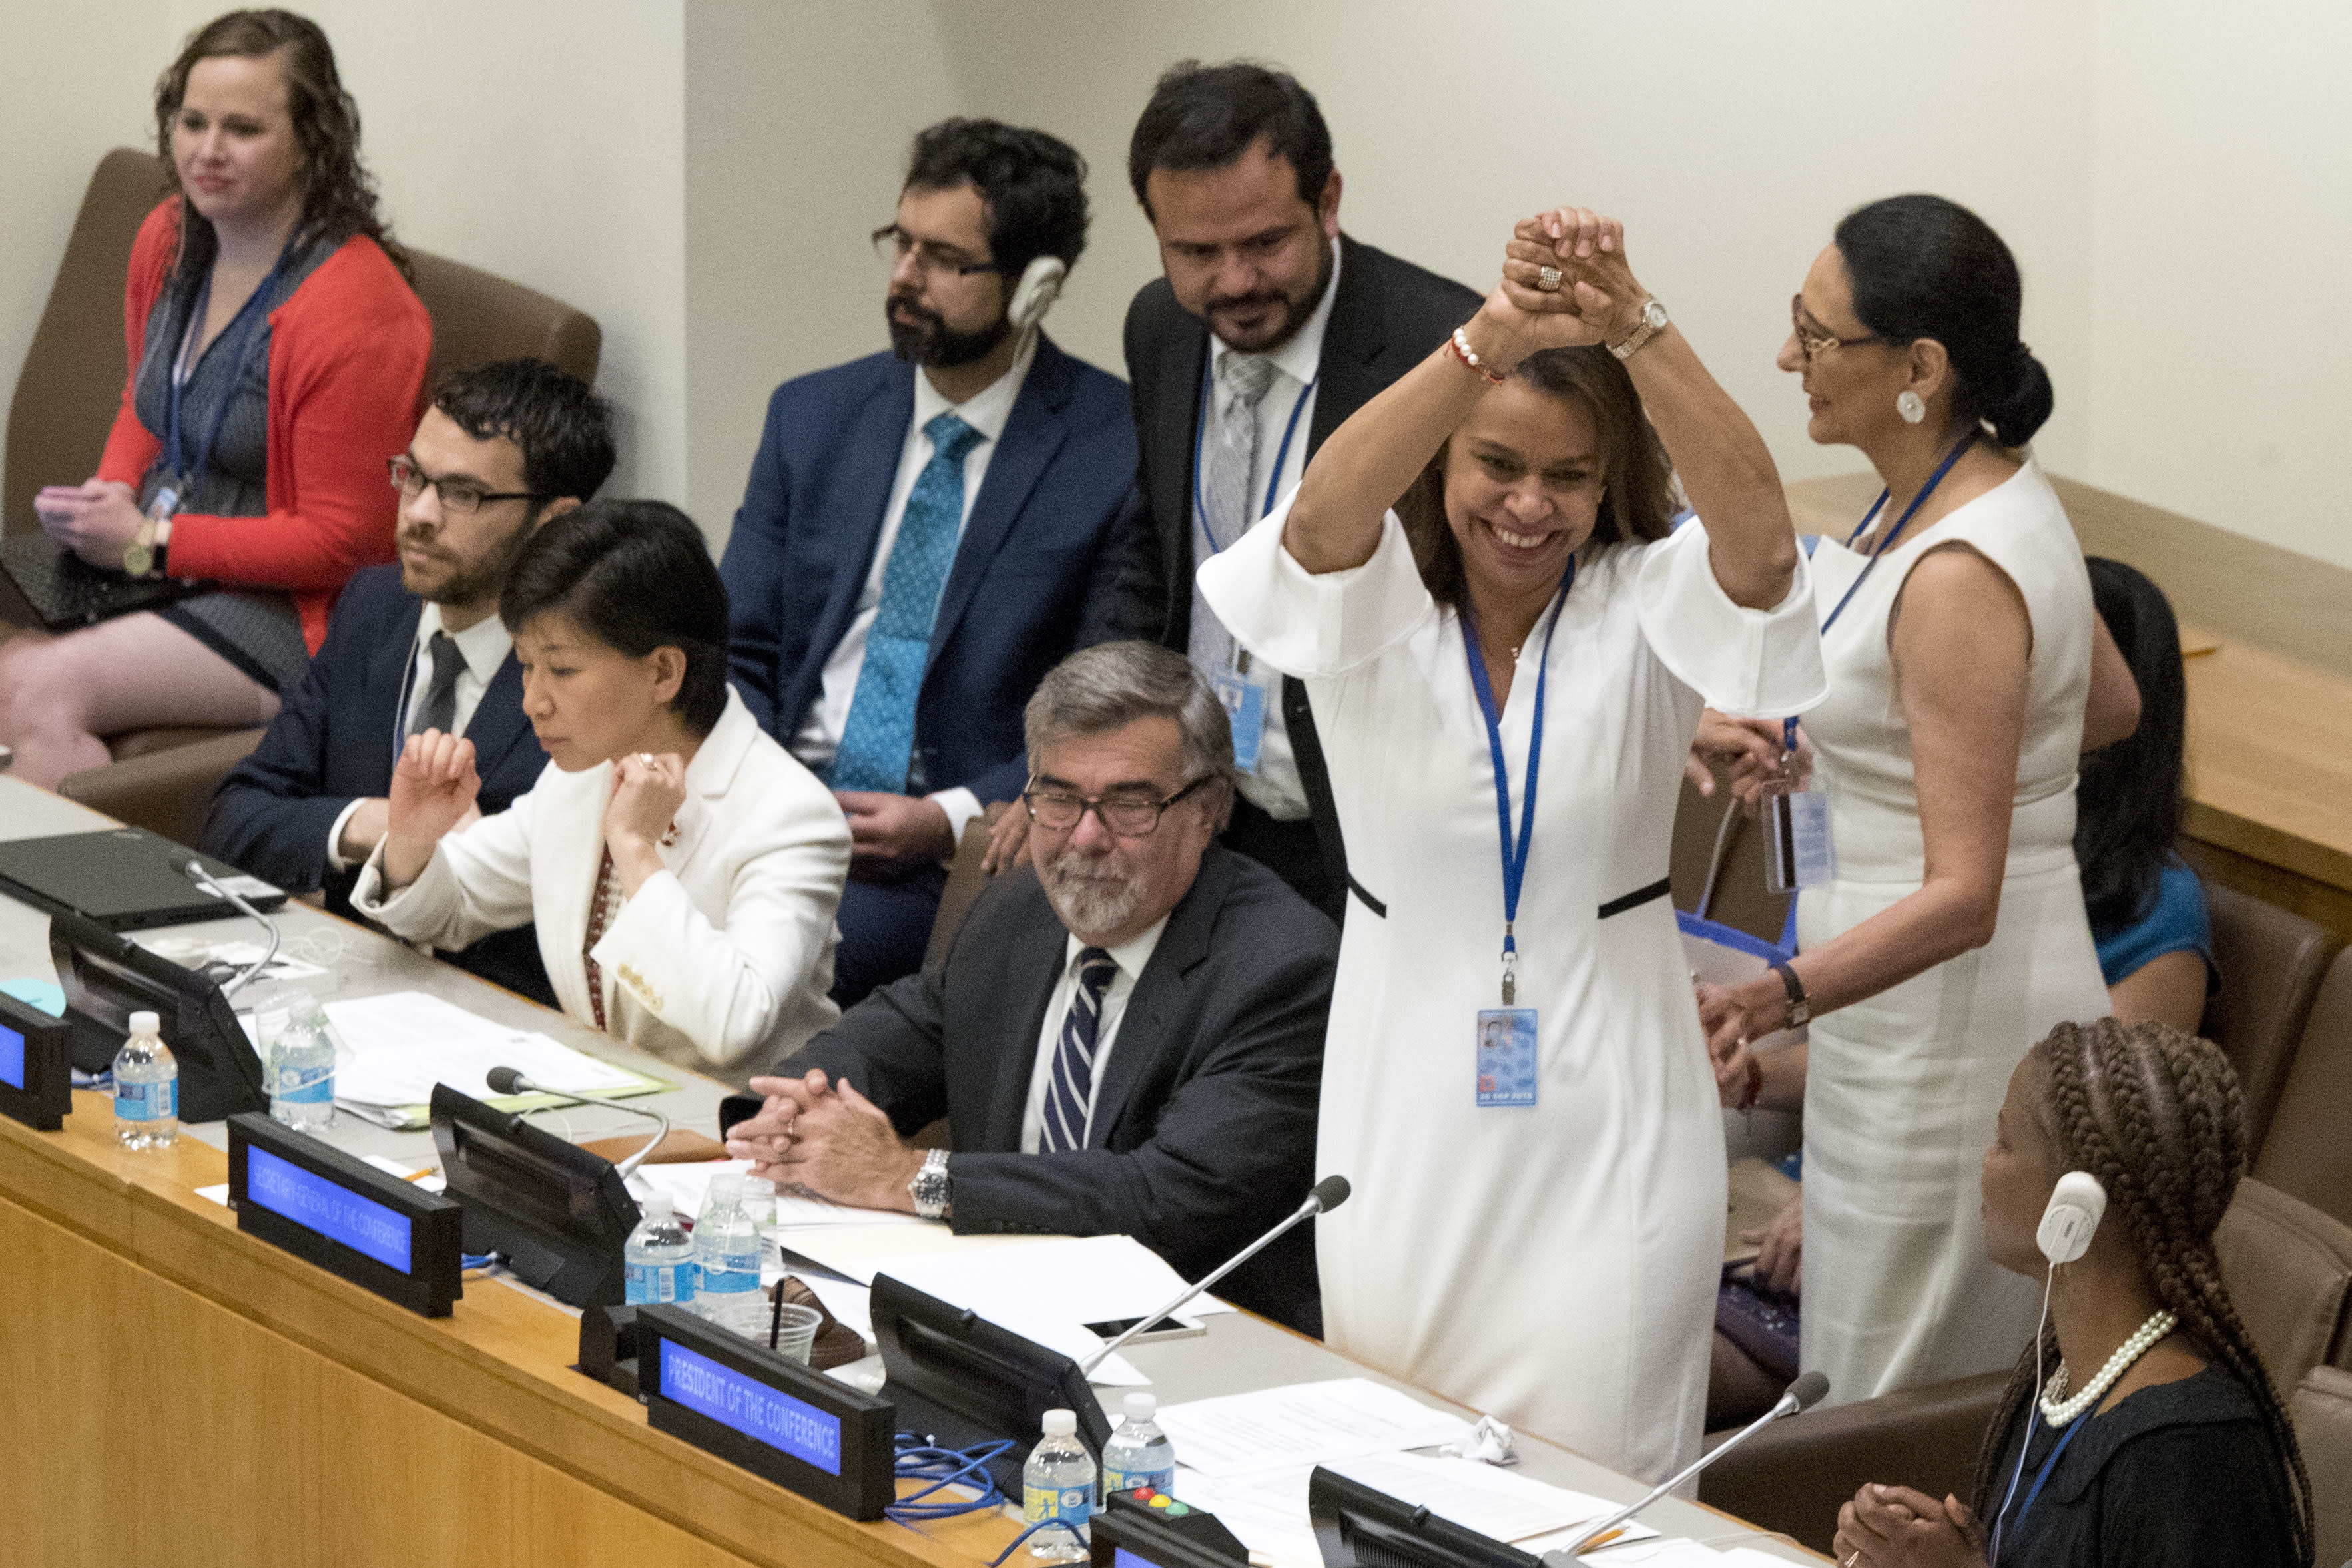 122 Countries Approve First-Ever Treaty to Ban Nuclear Weapons